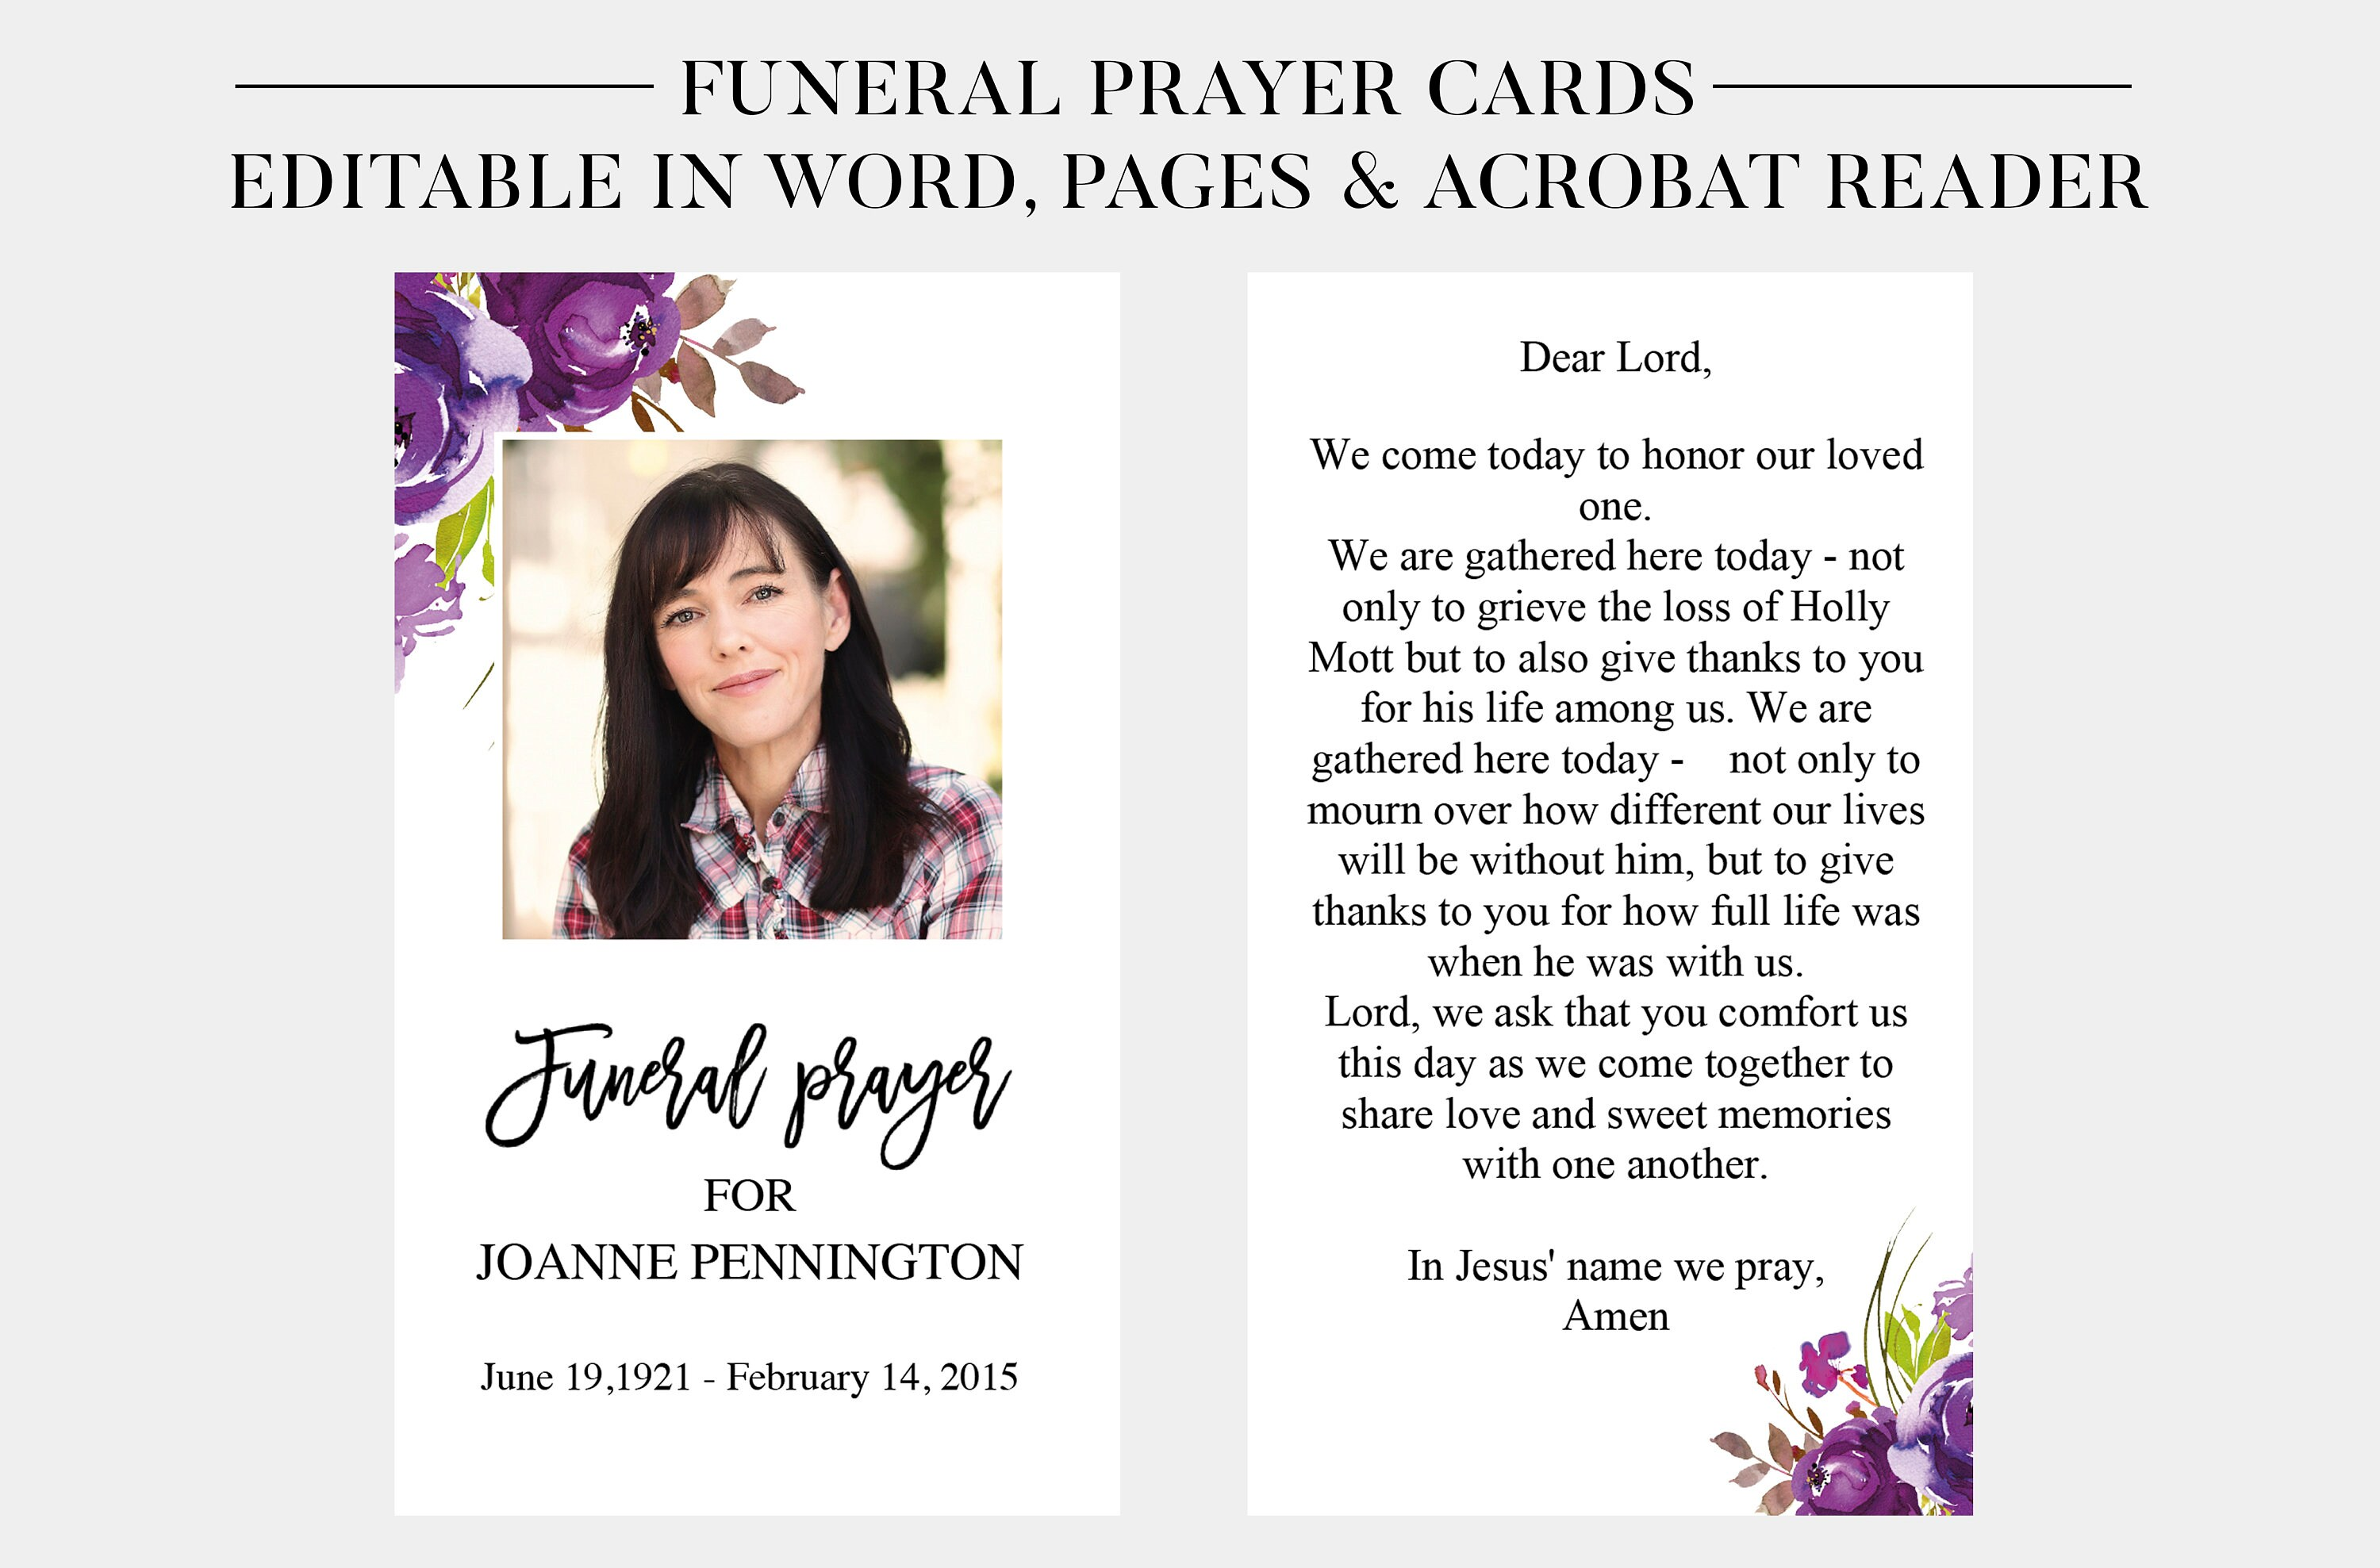 Funeral Prayer Cards  Printable Funeral Cards  Memorial Cards  Funeral  Religious Cards  Memorial Prayer Card Template  Word Pages PDF With Memorial Card Template Word